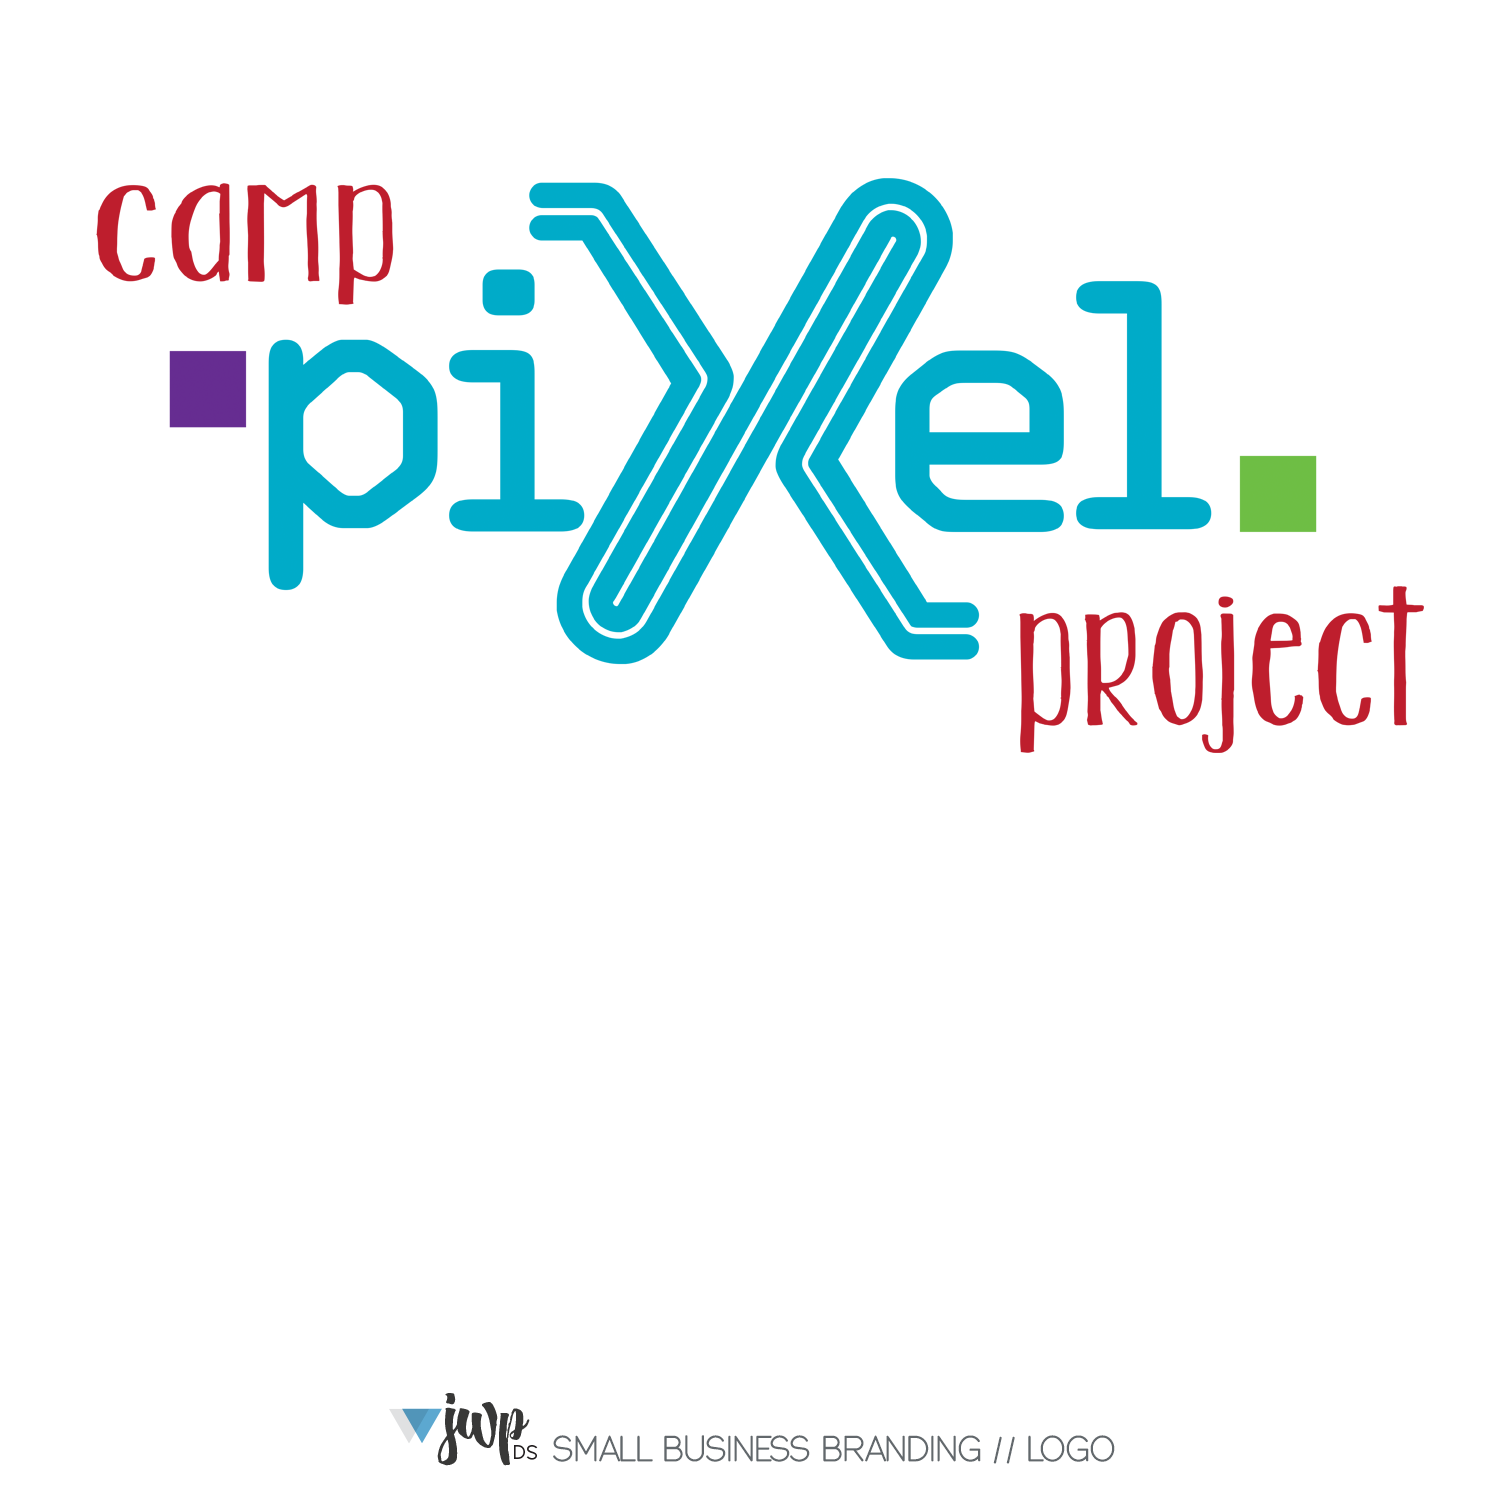 The Woodlands Graphic Design Logo Camp Pixel Project